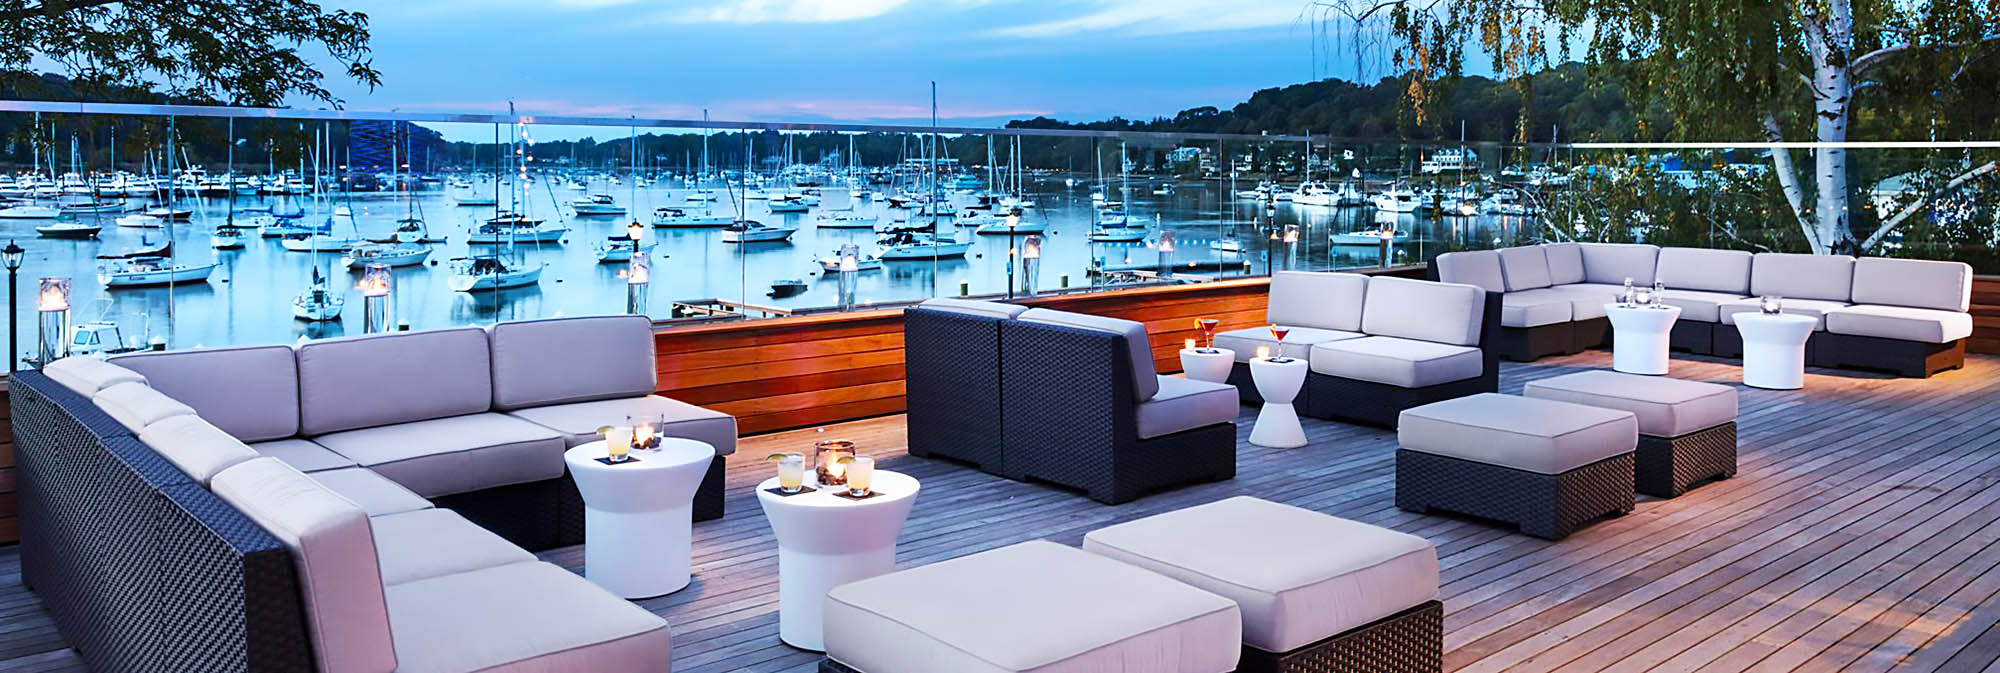 Harbor Club At Prime: Yacht Rock Concert Series